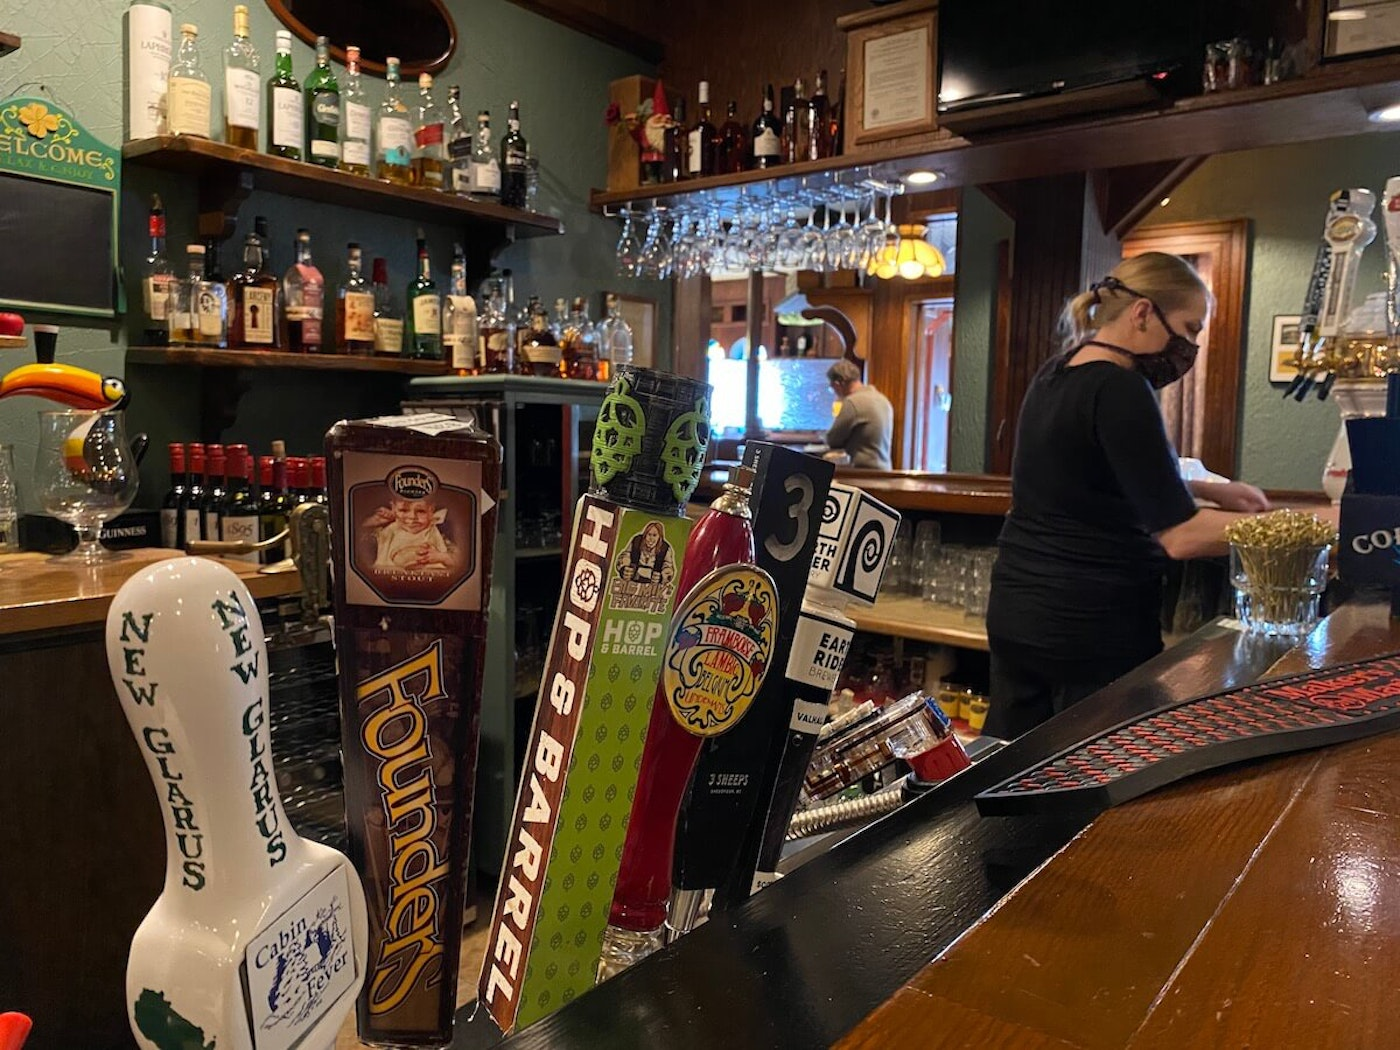 Ashley Deetz cleans the bar area at Houligans Steak & Seafood Pub in downtown Eau Claire Thursday afternoon before the restaurant opened. People working at restaurants, taverns and other service sector jobs have been among the hardest hit financially by the ongoing coronavirus pandemic. (Photo by Julian Emerson)